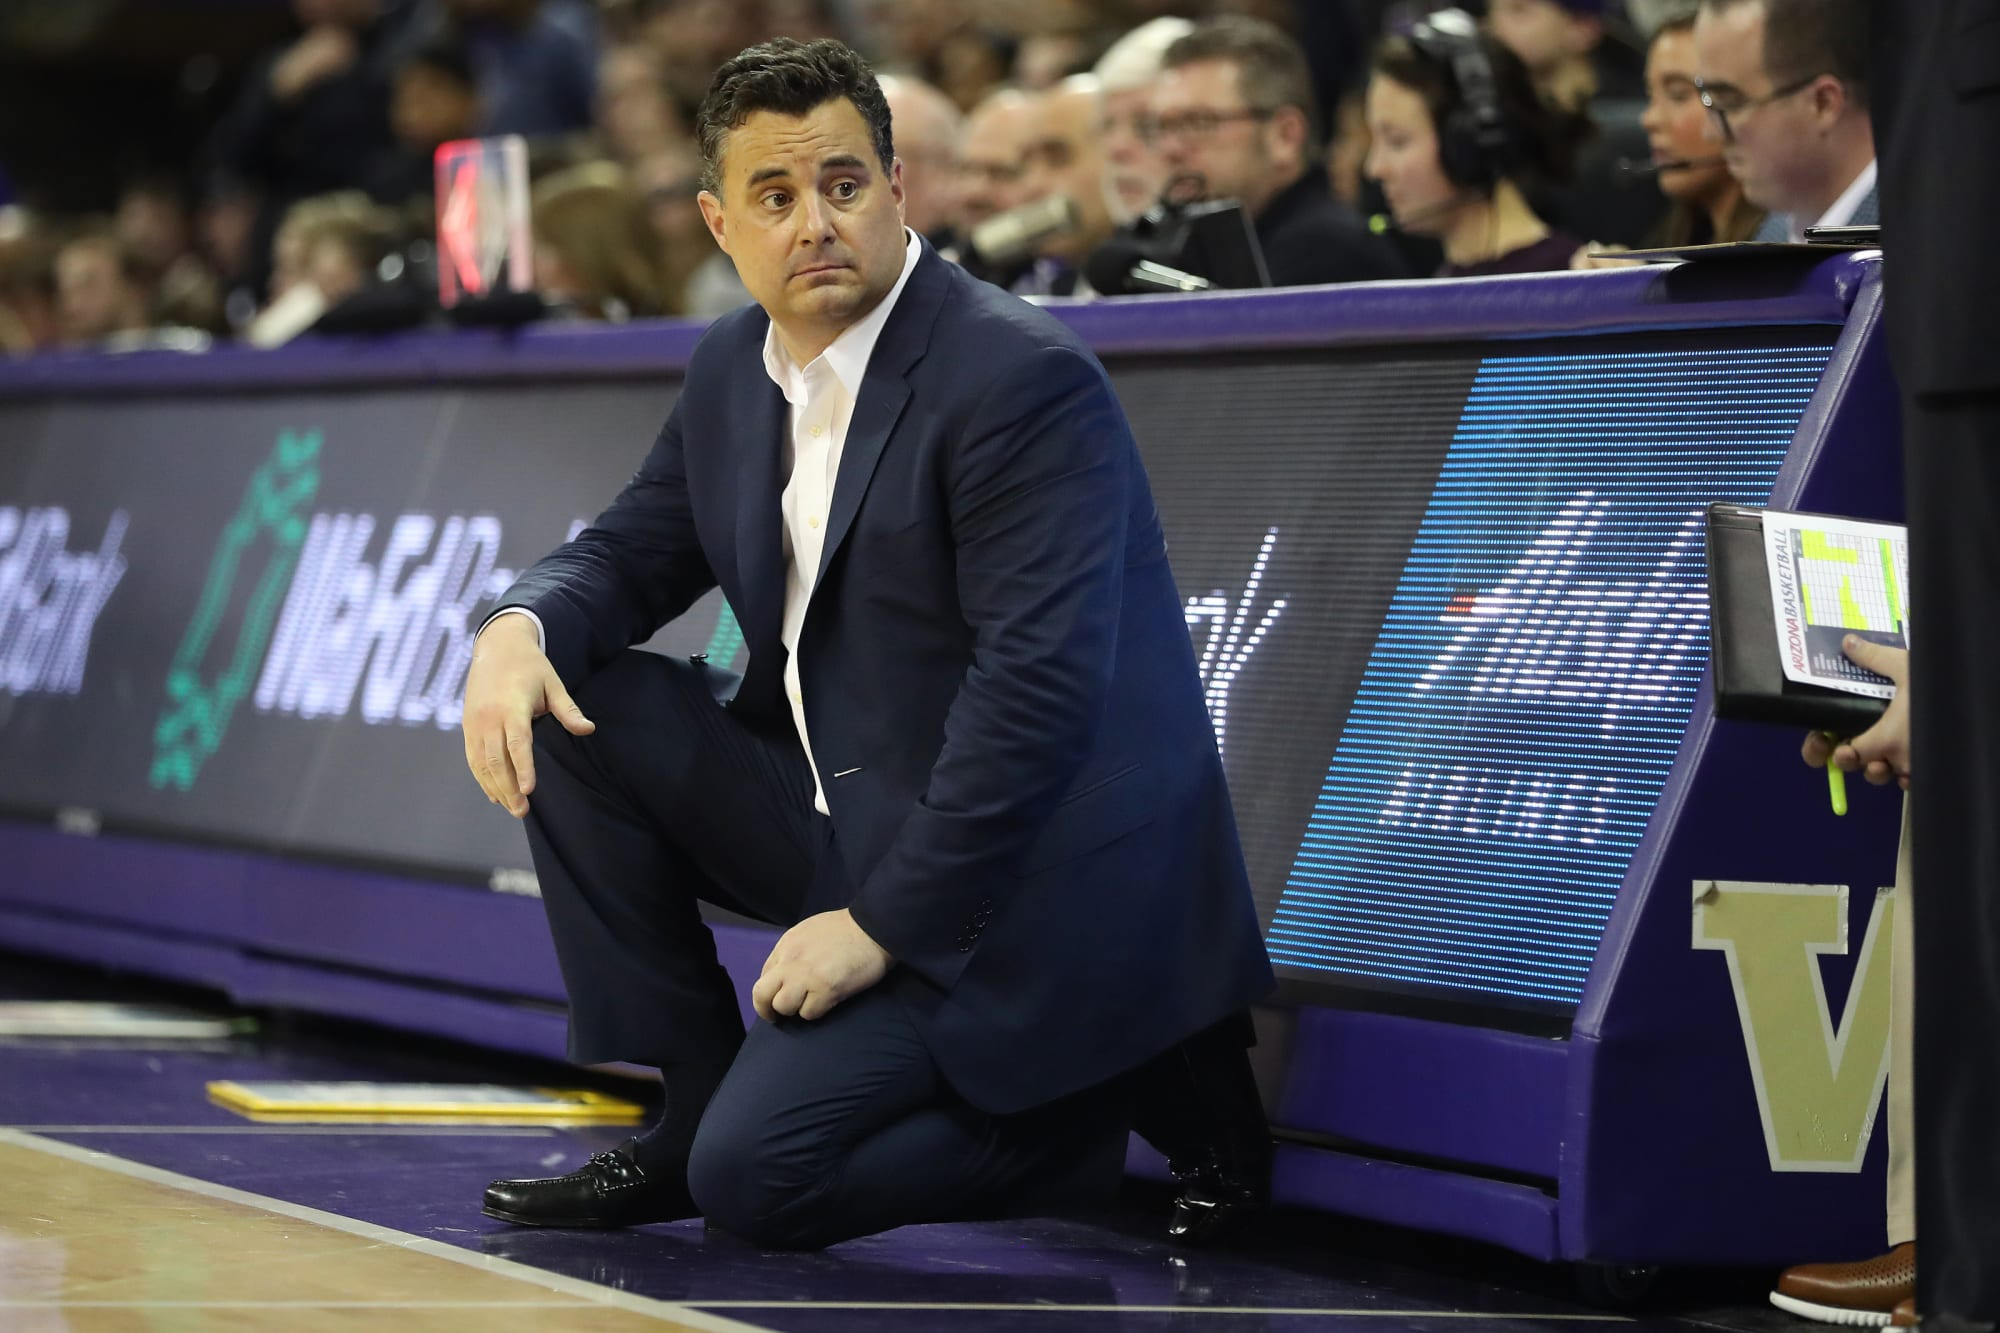 Looking at the roster for Arizona Basketball for 2020-21